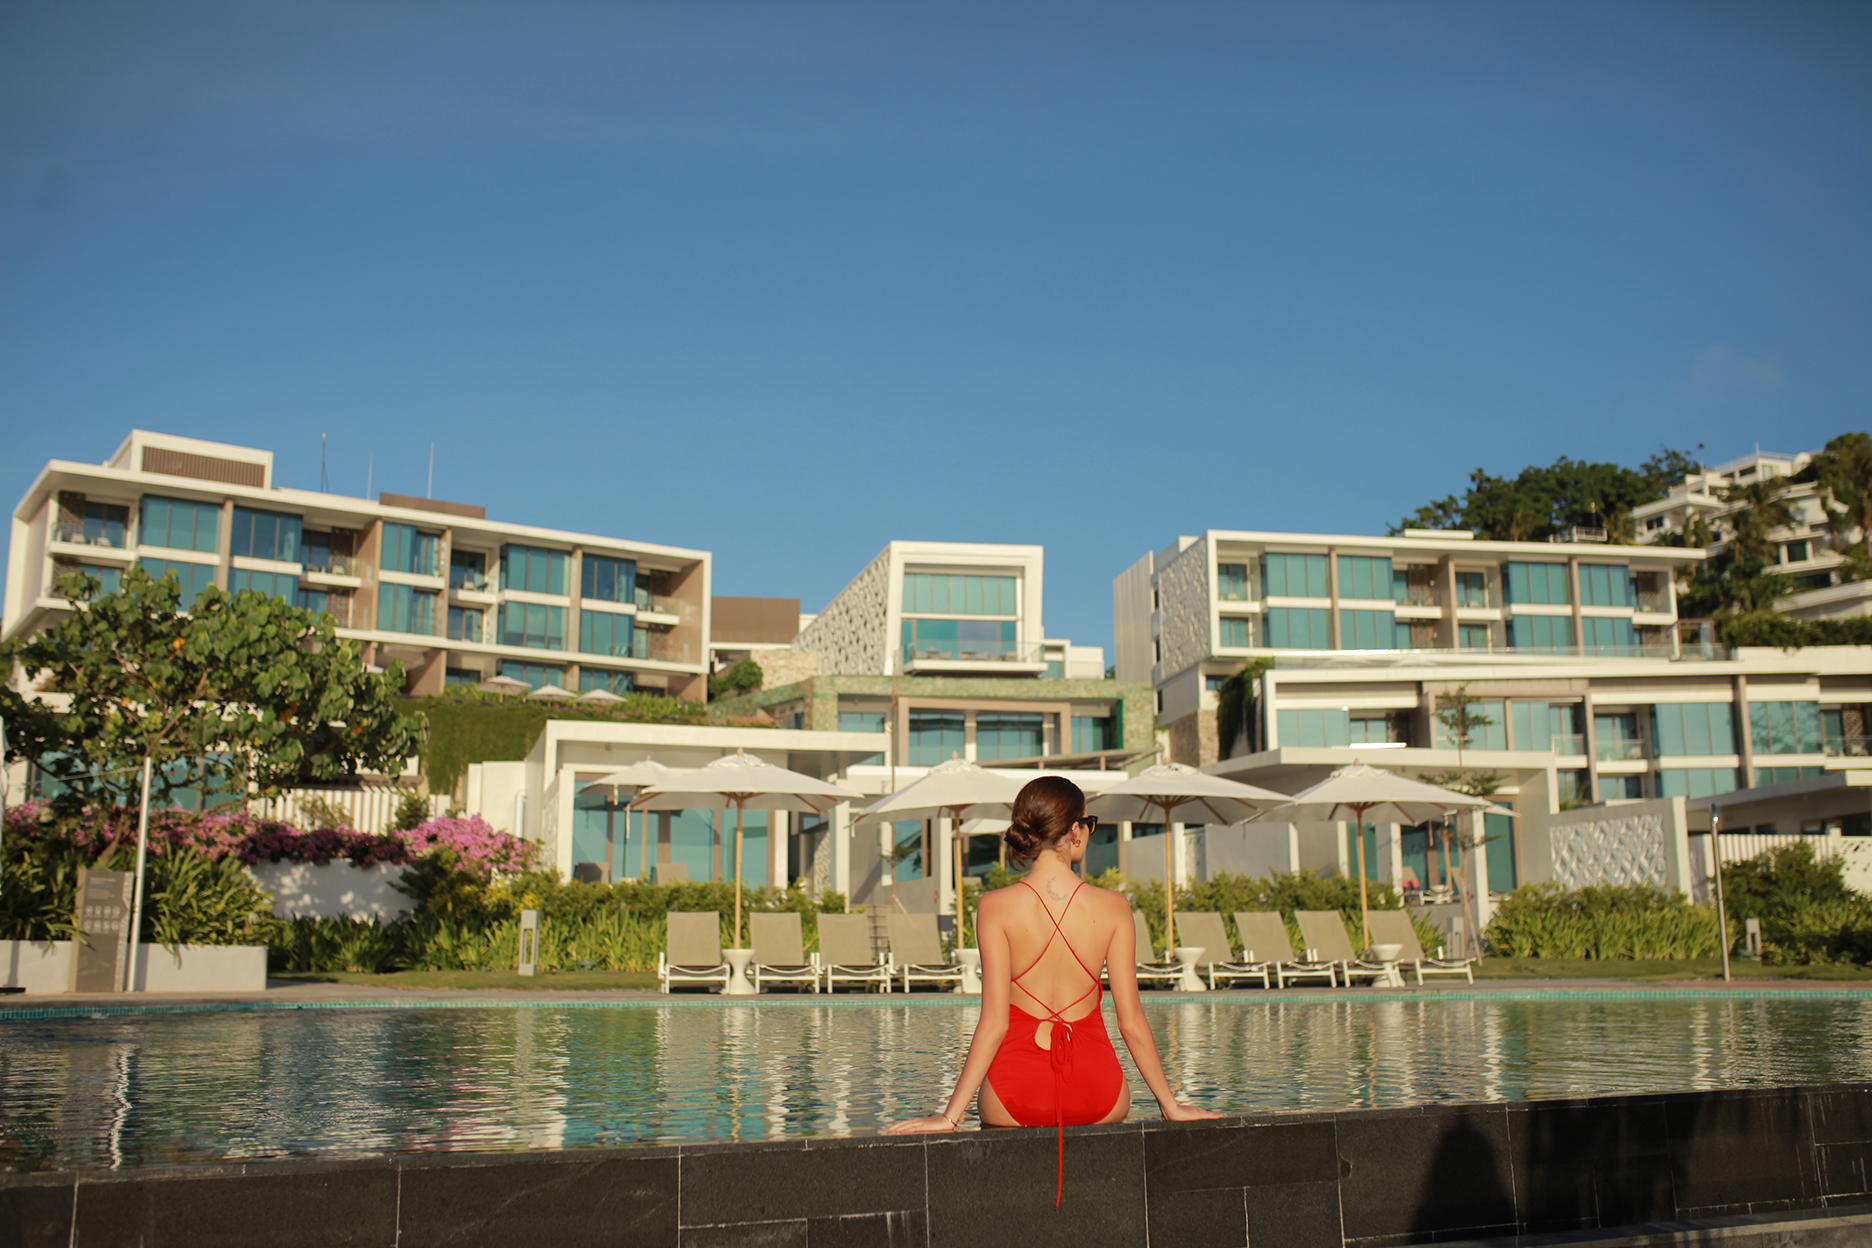 3D2N Boracay Package with Airfare | Crimson Resort from Manila - day 1